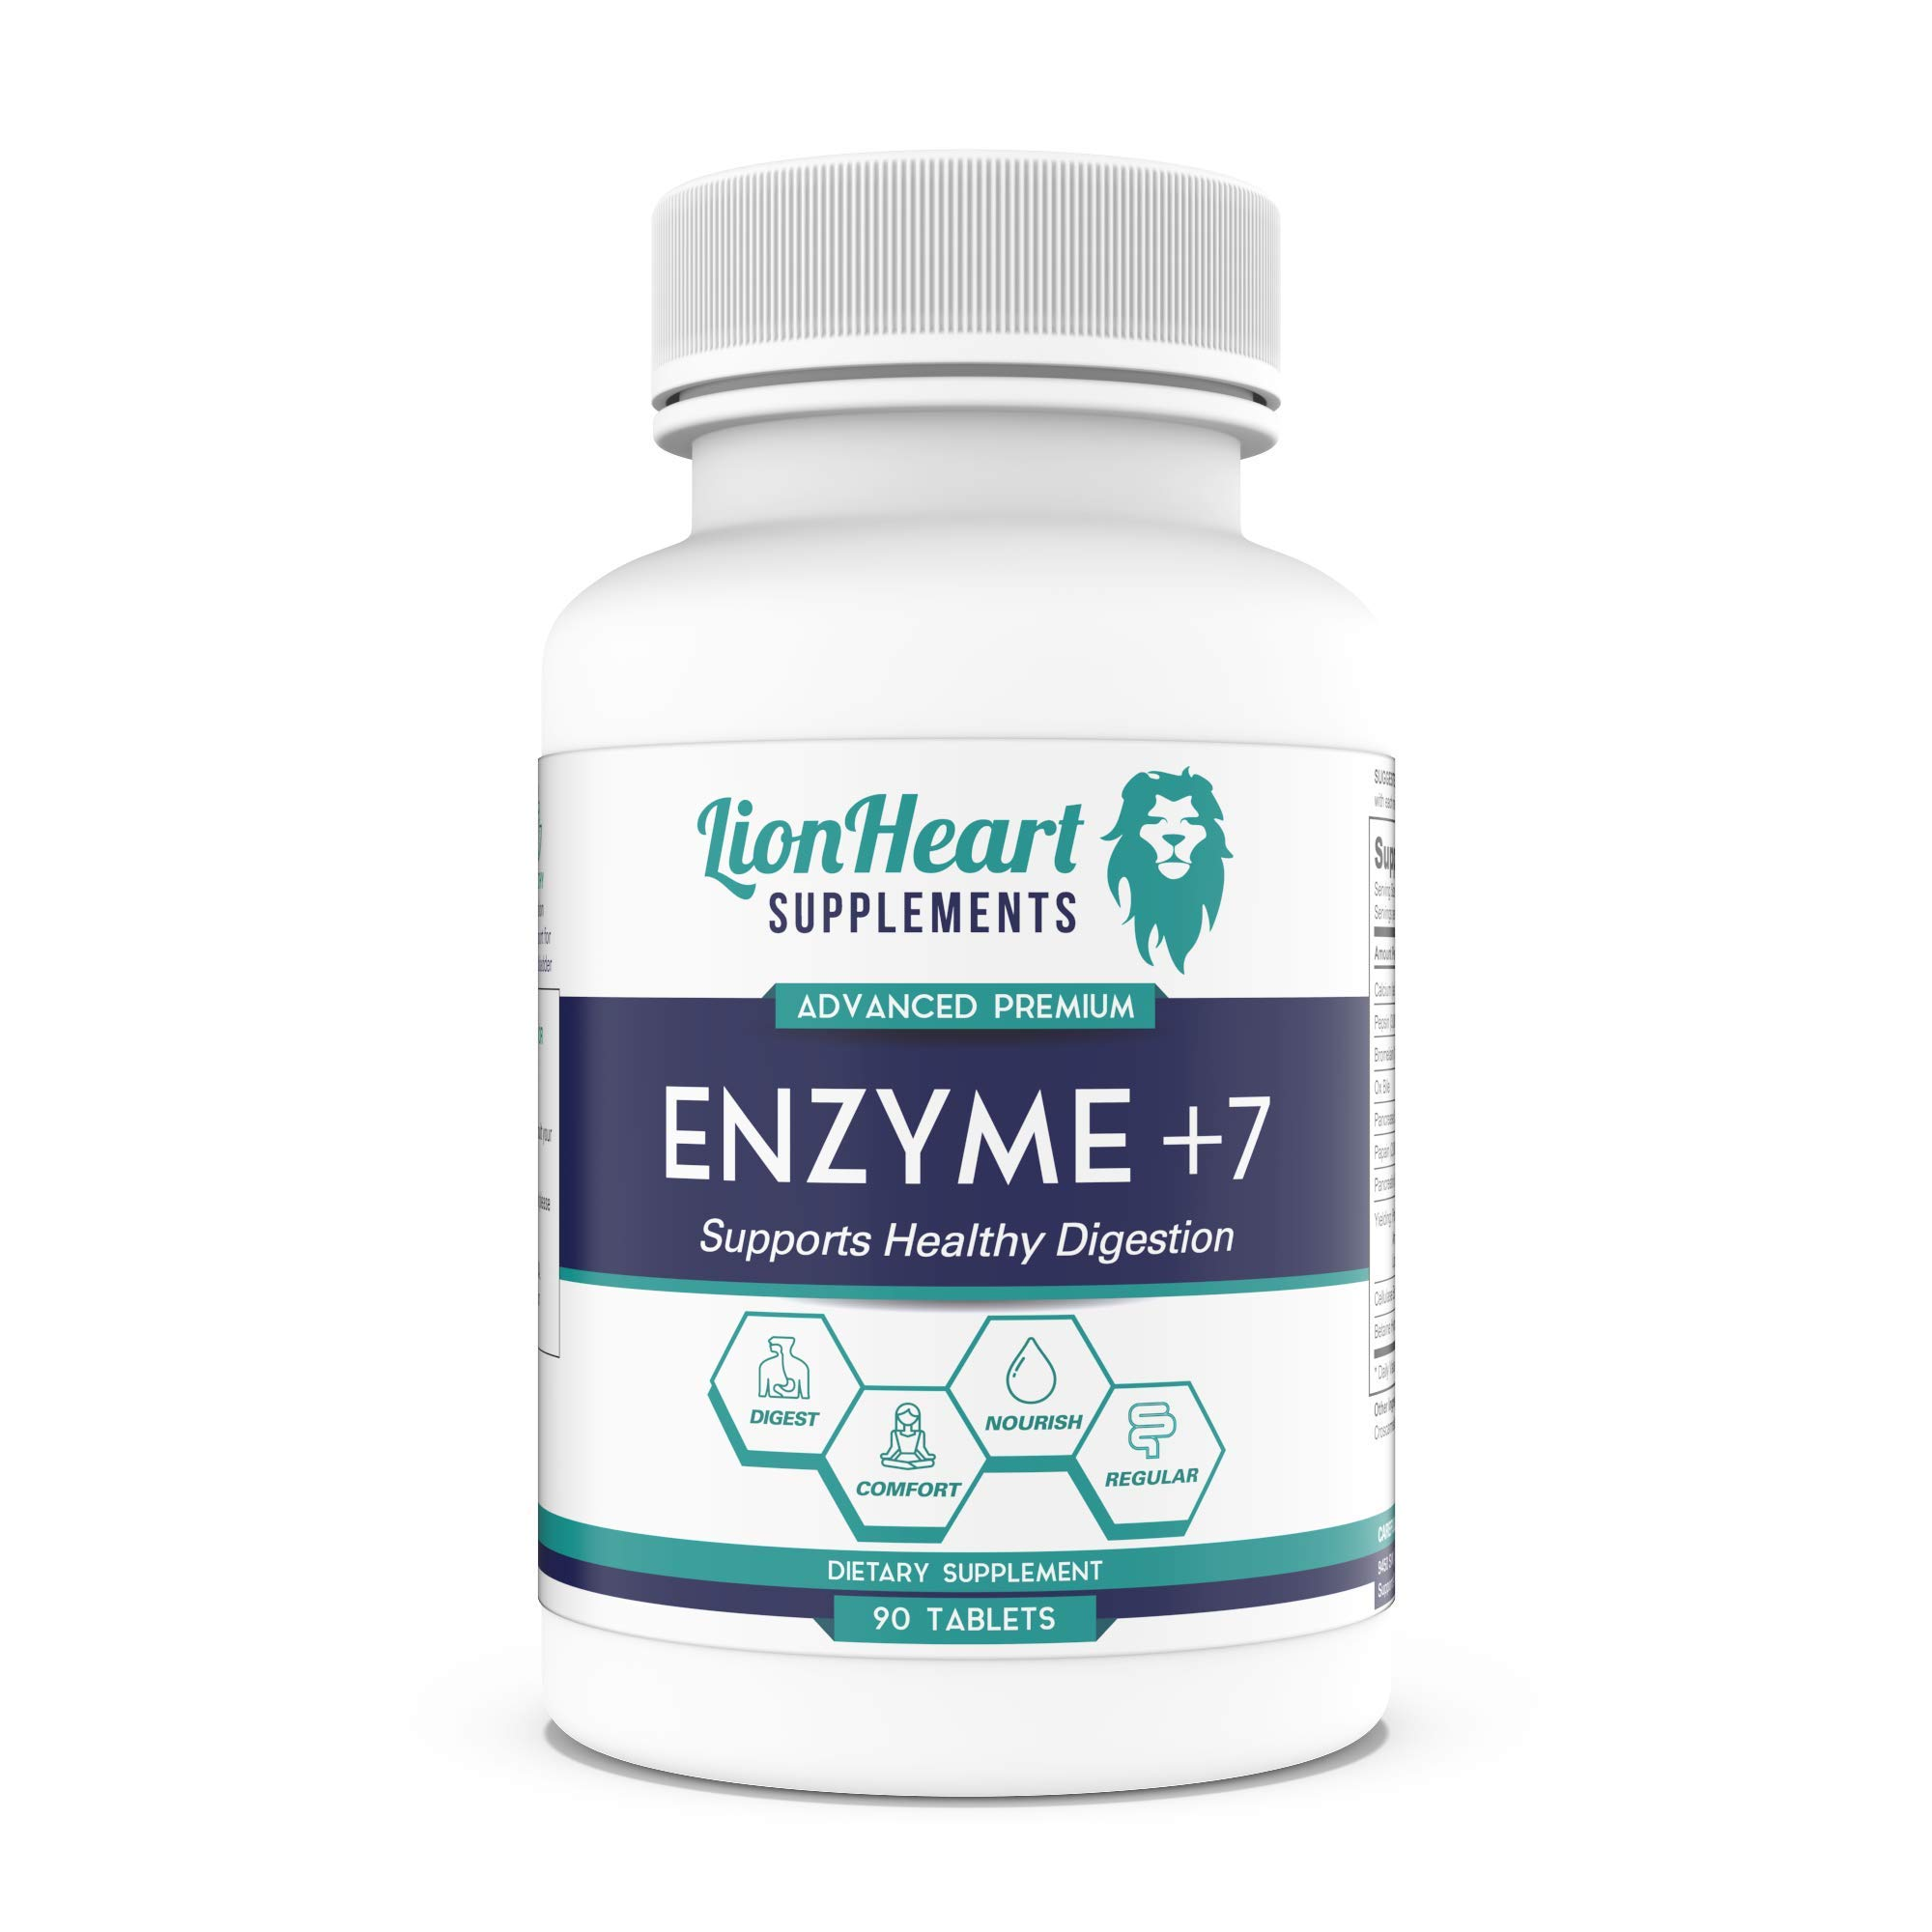 Best Digestive ENZYMES Supplement - Purified OX Bile Salts - Tablets for No Gallbladder - Enzyme for Digestion Relief Women & Men - Help Bloating, Controls IBS, Acid Reflux & Constipation by LionHeart Supplements